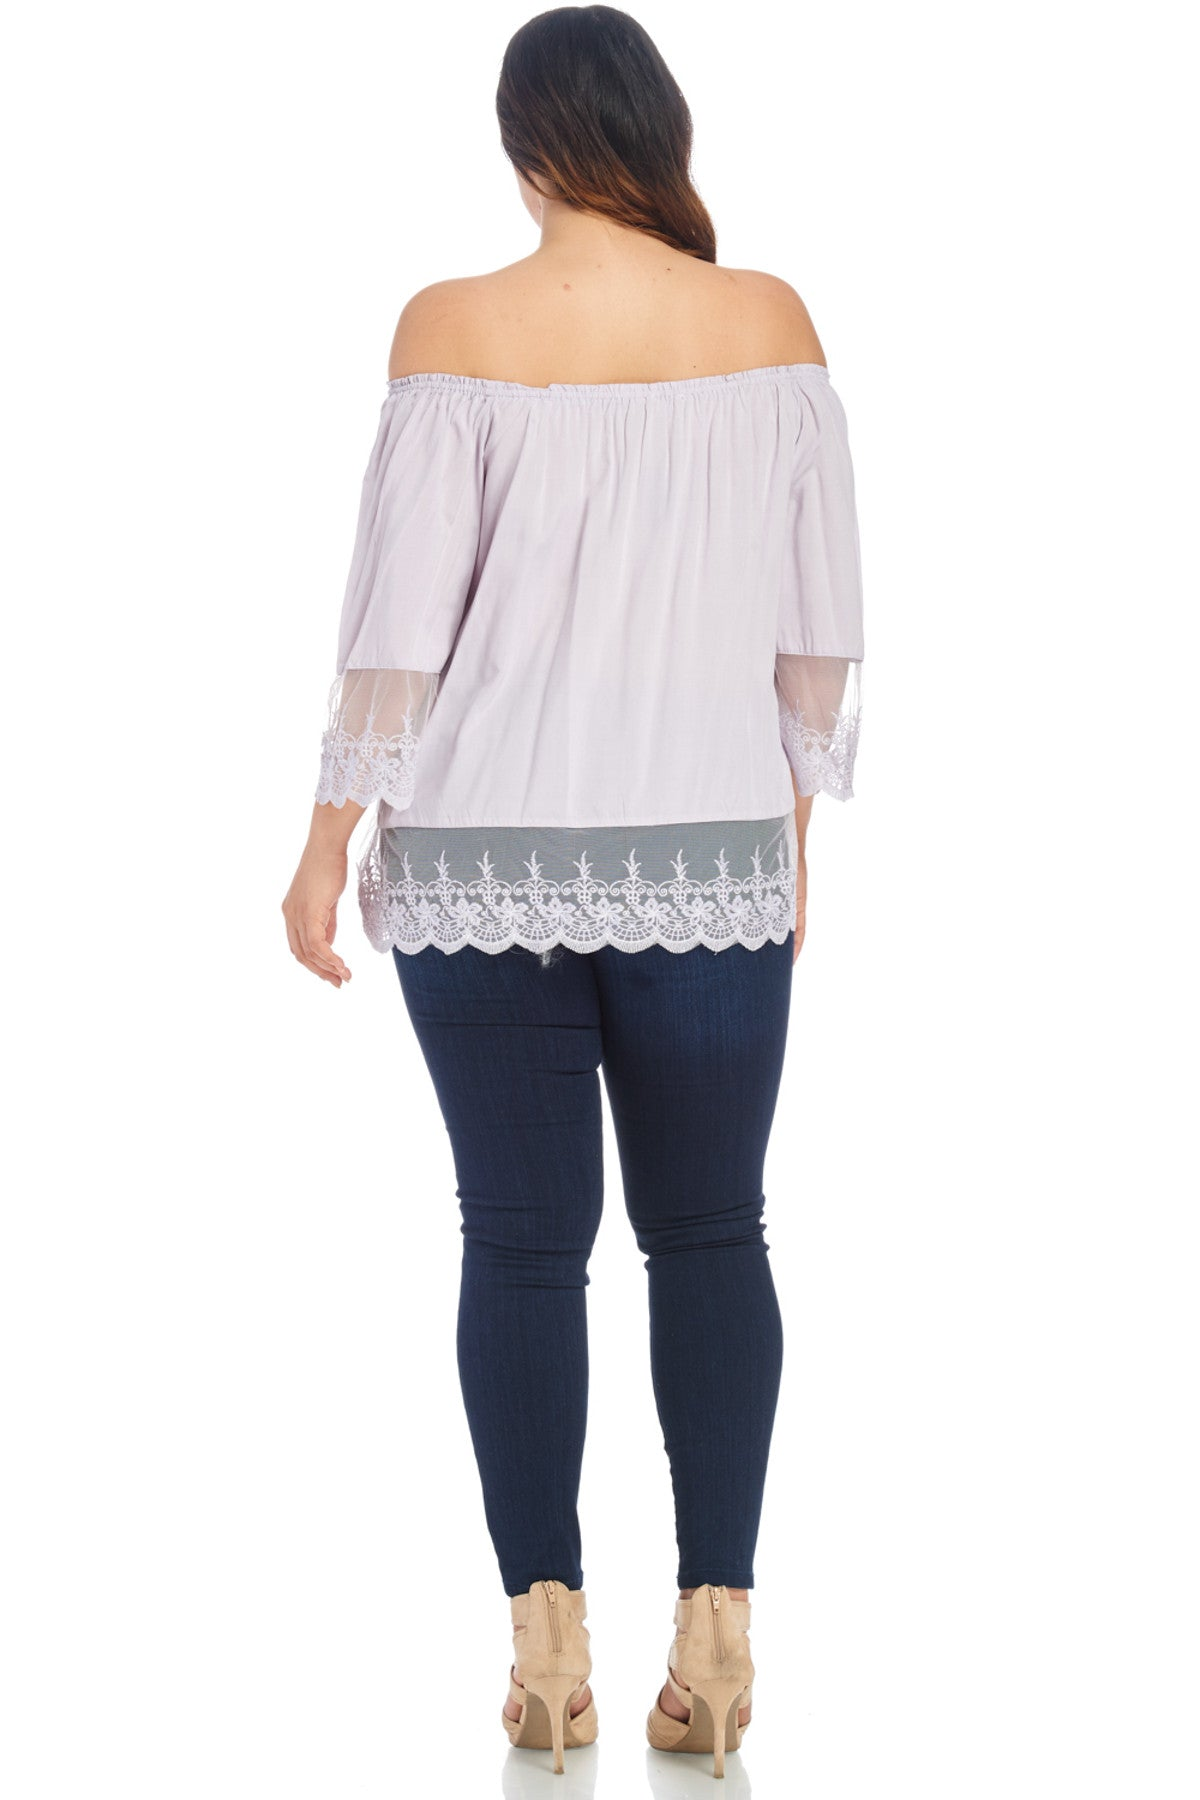 Plus Size Lace Blouse Shirt Tops